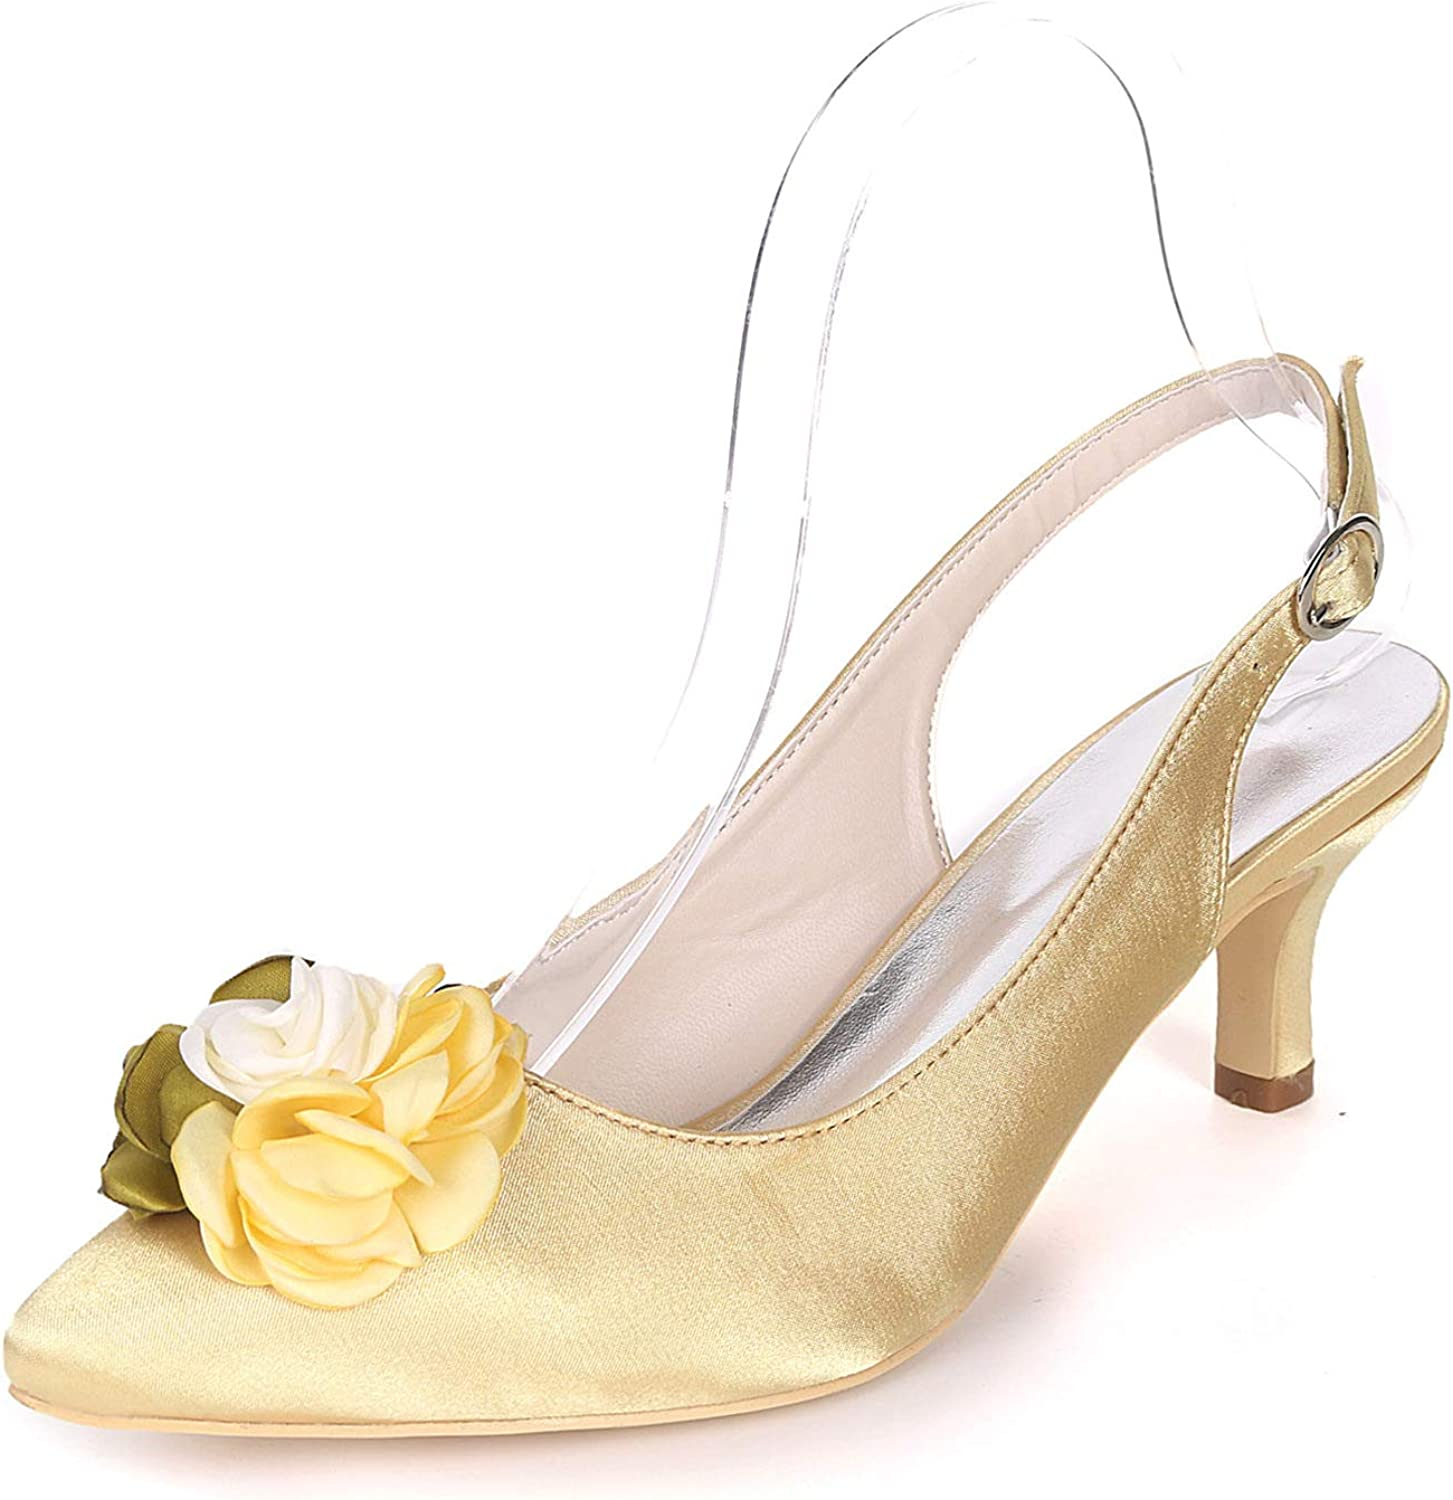 LLBubble Women Kitten Heels Pointed Toe Flower Party shoes Buckle Strap Satin Evening Wedding Bridal Party Dress Pumps 1608-20H